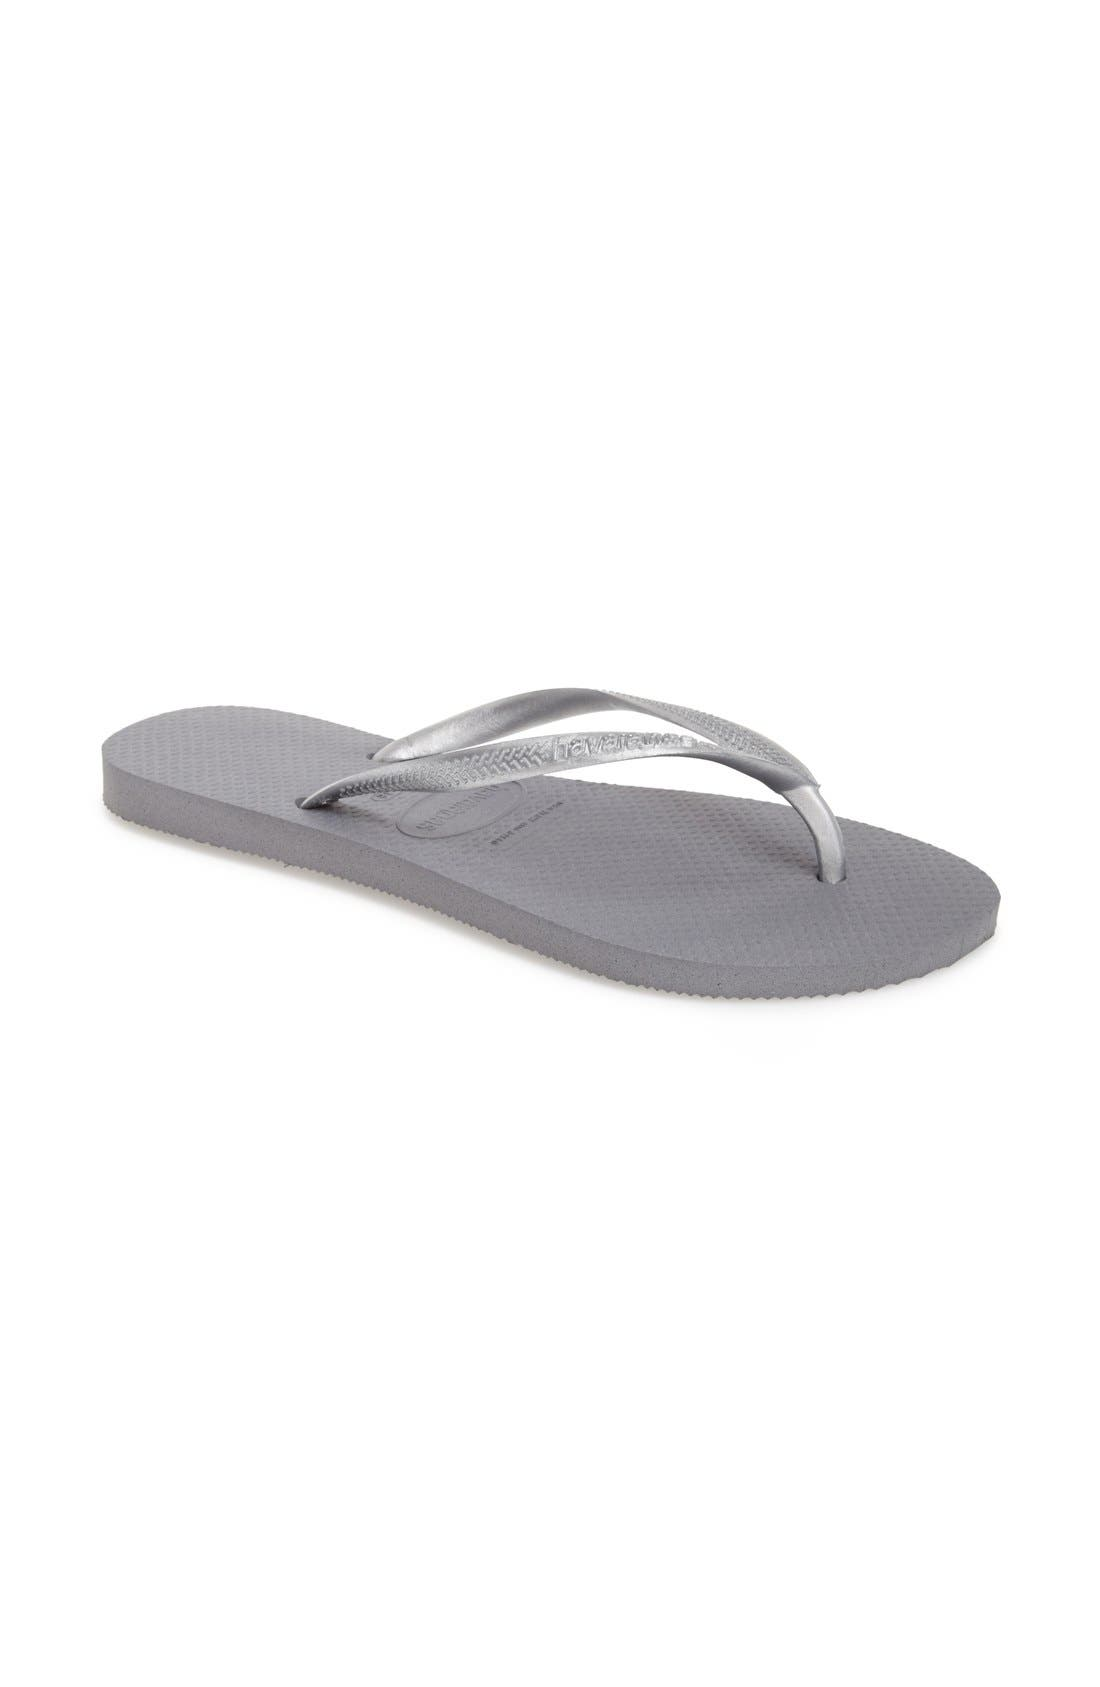 'Slim' Flip Flop,                             Main thumbnail 1, color,                             STEEL GREY